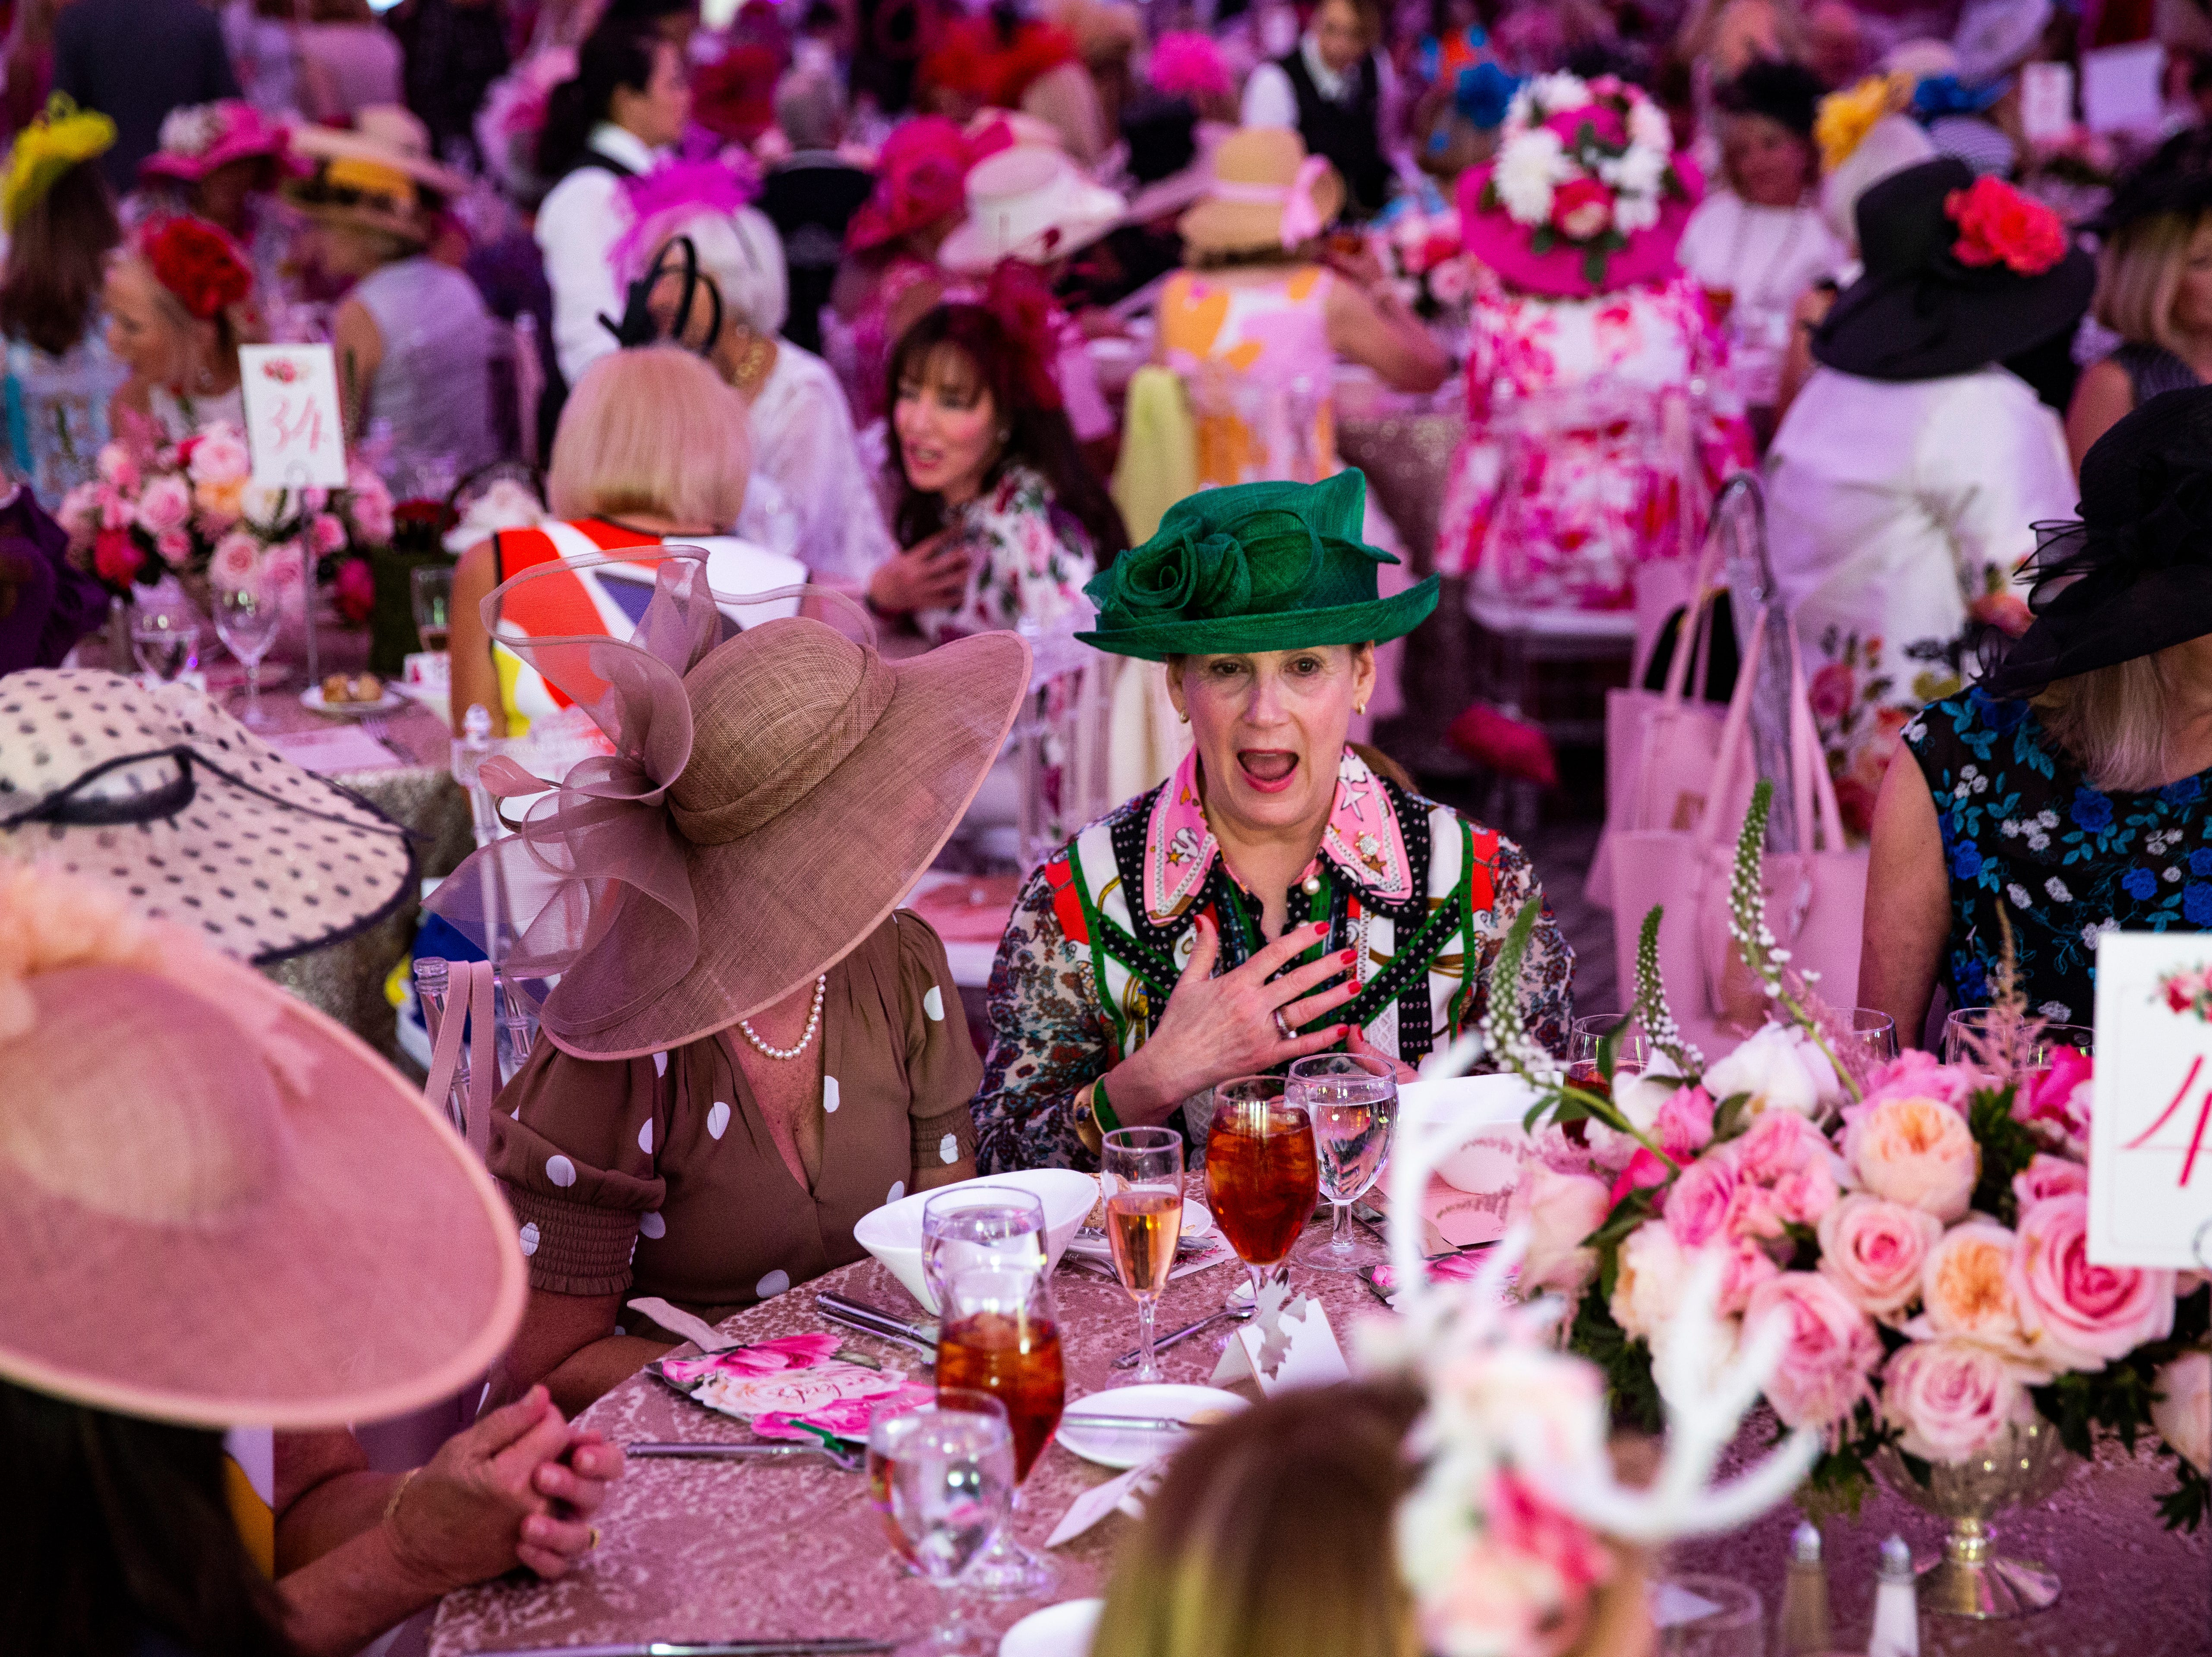 Sharon Kaltenborn of Naples shares a story with a friend during the 15th annual Hats in the Garden fundraiser luncheon at the Naples Botanical Garden on Wednesday, Nov.7, 2018. The fundraiser marks the kickoff to the year's social season. Since the inception of the fundraiser in 2004, the event has been supported by the Sustaining Leadership Council, a group of women who dedicate their time and charitable support to the Botanical Garden's special events and donor programs.